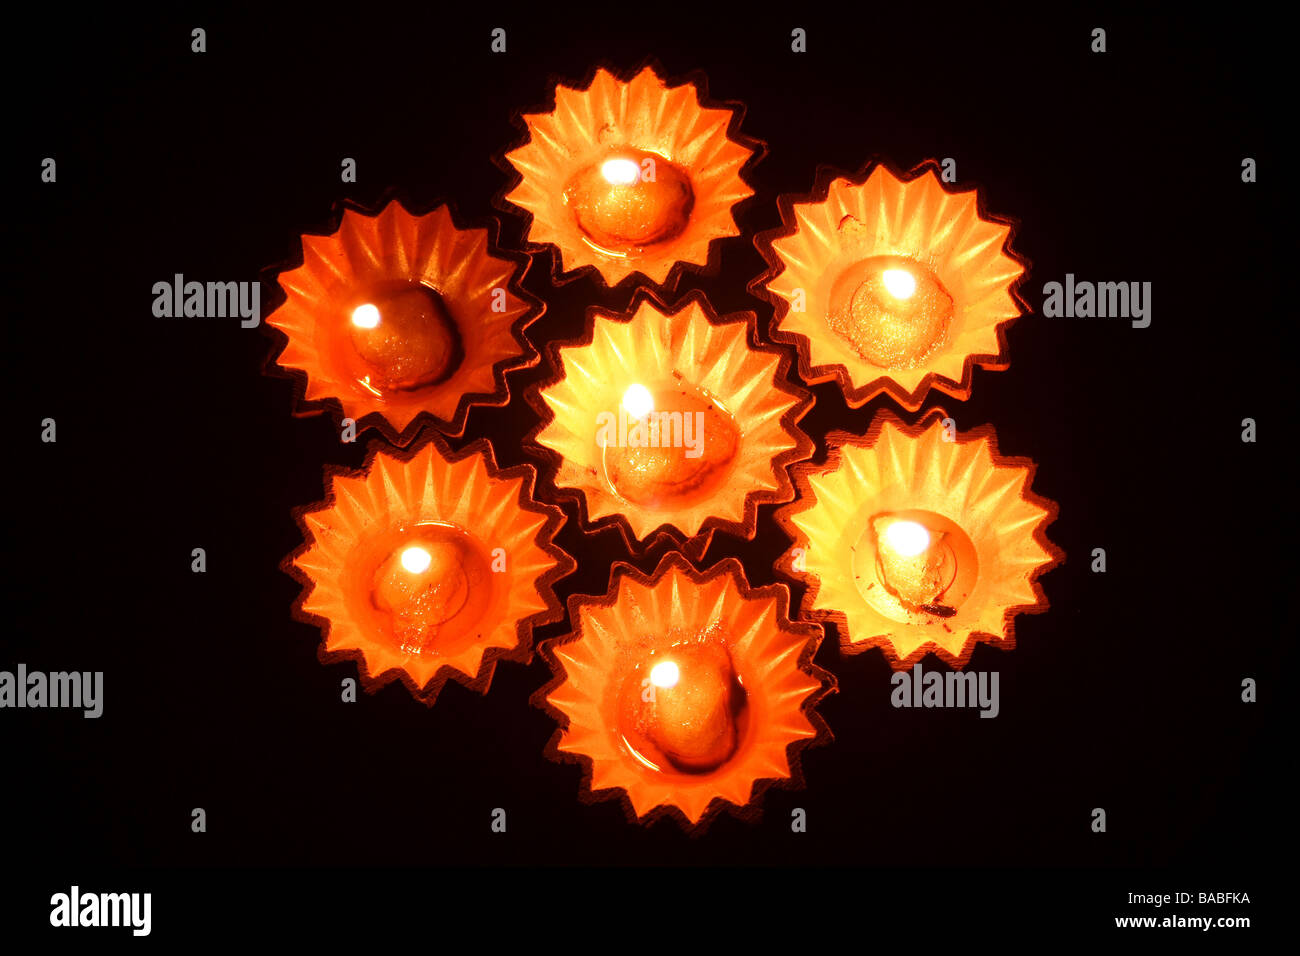 Oil lamps - Stock Image